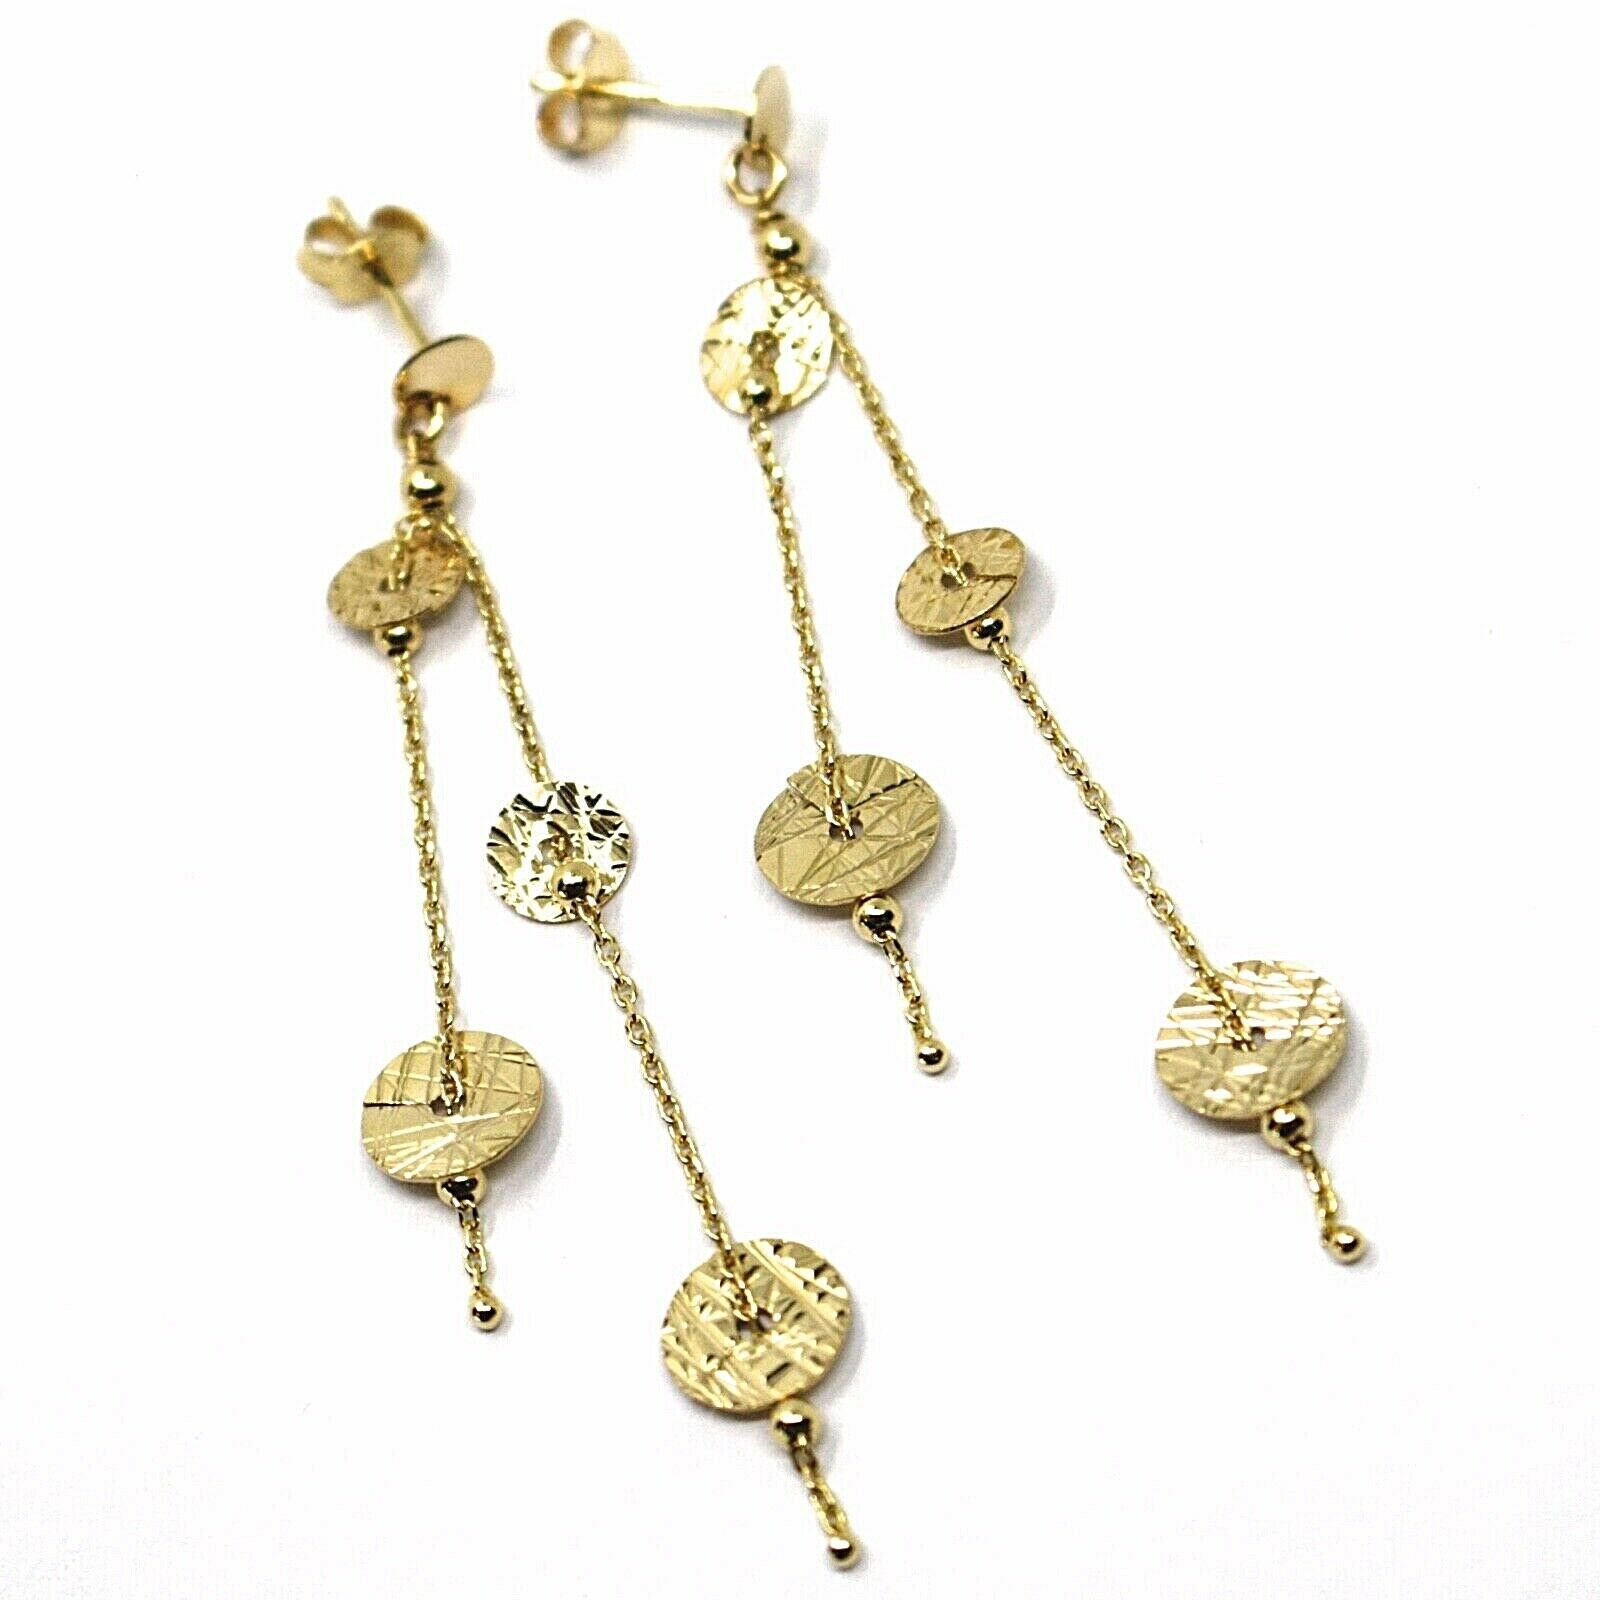 18K YELLOW GOLD PENDANT EARRINGS, DOUBLE WIRES WITH WORKED DISCS 6cm 2.4 INCHES